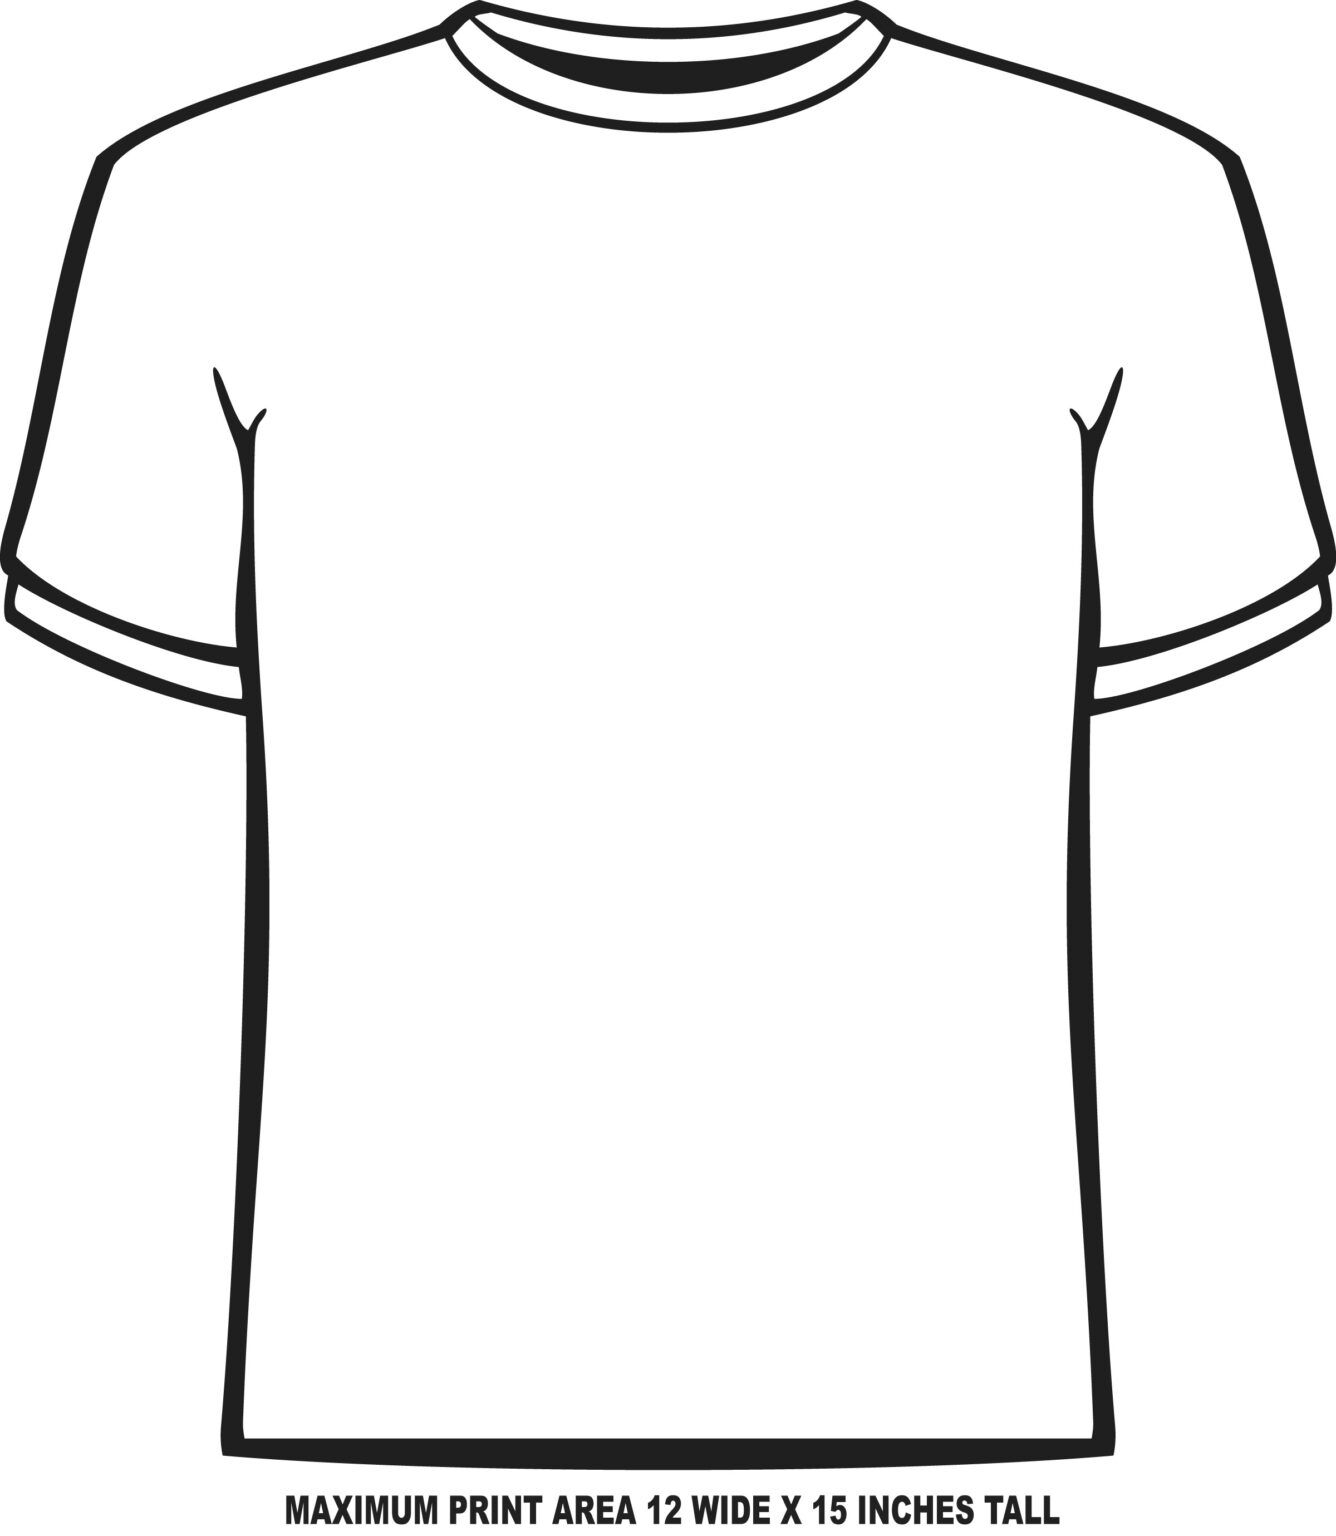 Blank Tshirt Template Pdf Dreamworks Within Blank Tshirt Template Pdf Tshirt Template T Shirt Design Template Printable Tags Template